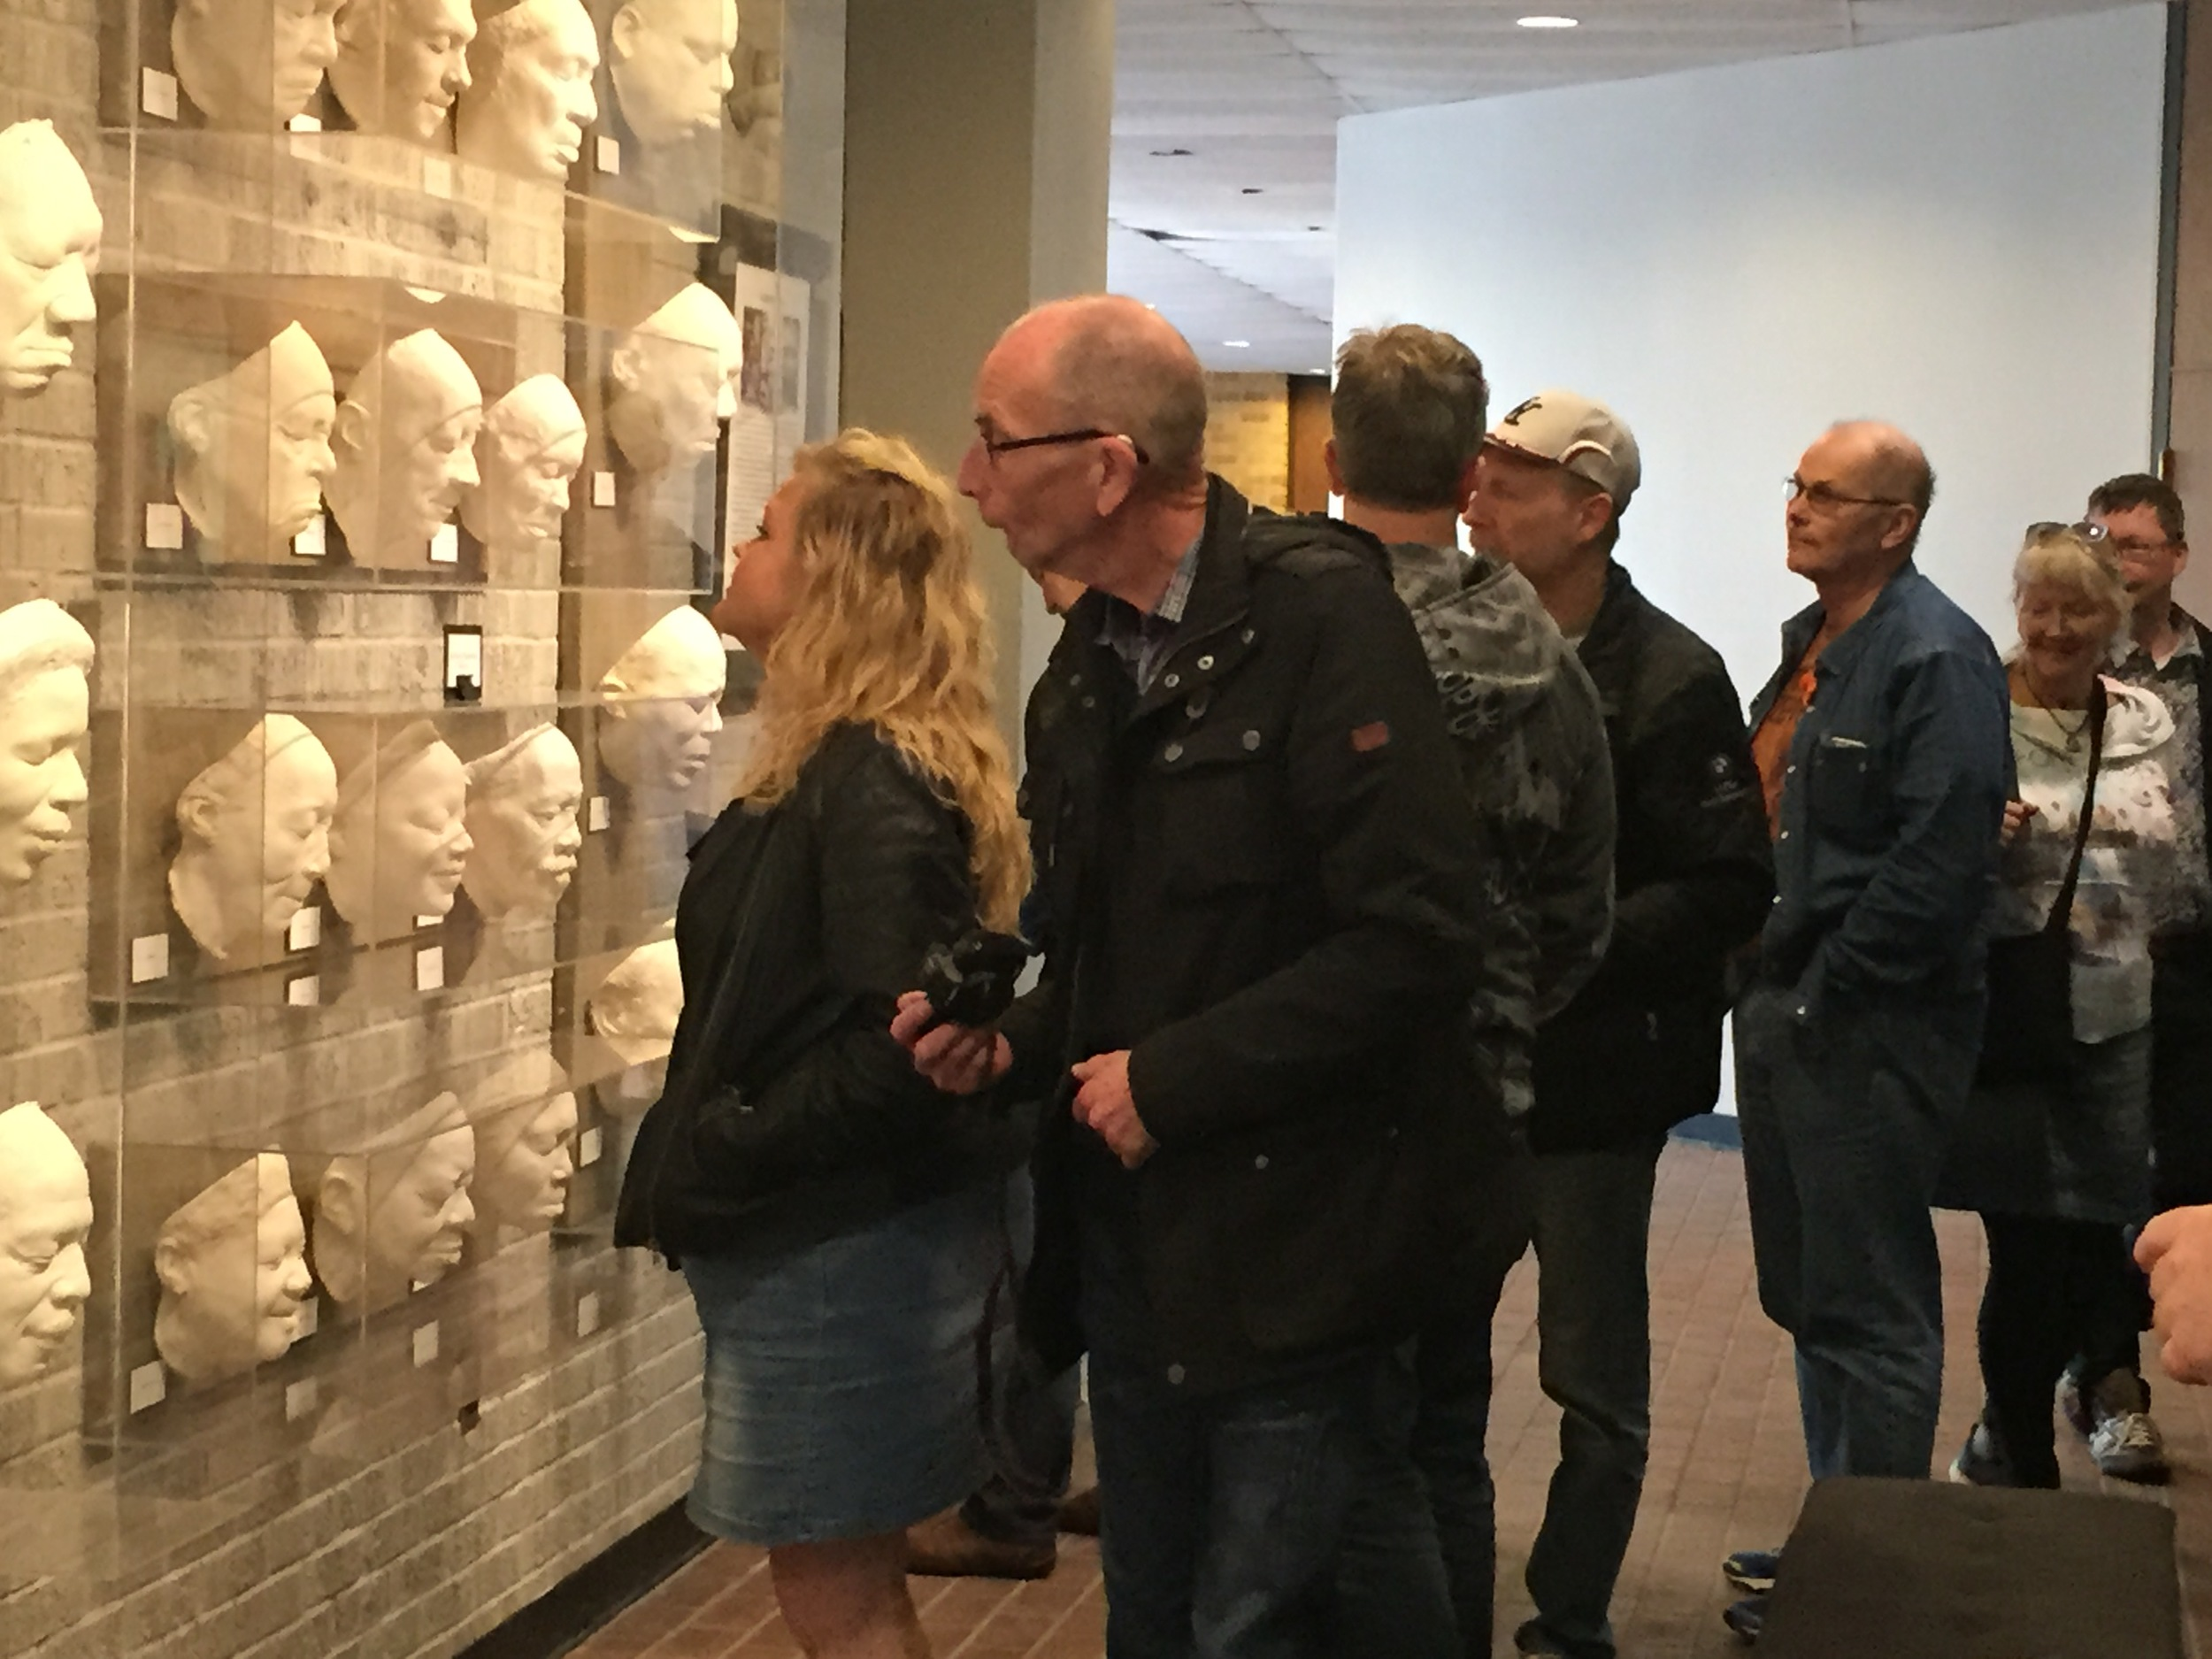 The Swedish tour group's trip began with a visit to the Delta Center for Culture and Learning where they viewed Sharon McConnell's lifecasts of Blues artists in the Center's gallery space.